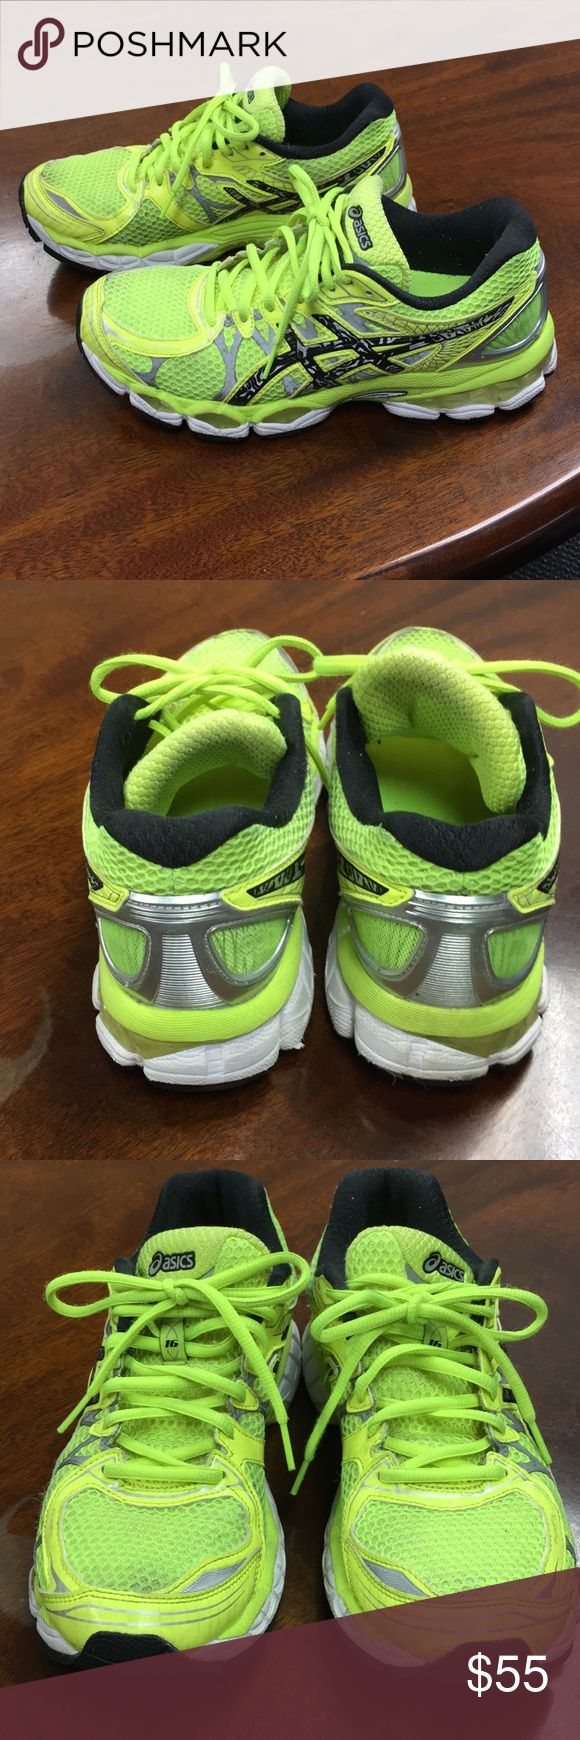 ASICS® GEL-NIMBUS 16 LITE-SHOW - WOMEN'S ASICS® GEL-NIMBUS 16 LITE-SHOW - WOMEN'S - Flash Yellow/Lightning/Black - size 8 - used sneakers but still in great condition a lot of life left Asics Shoes Sneakers